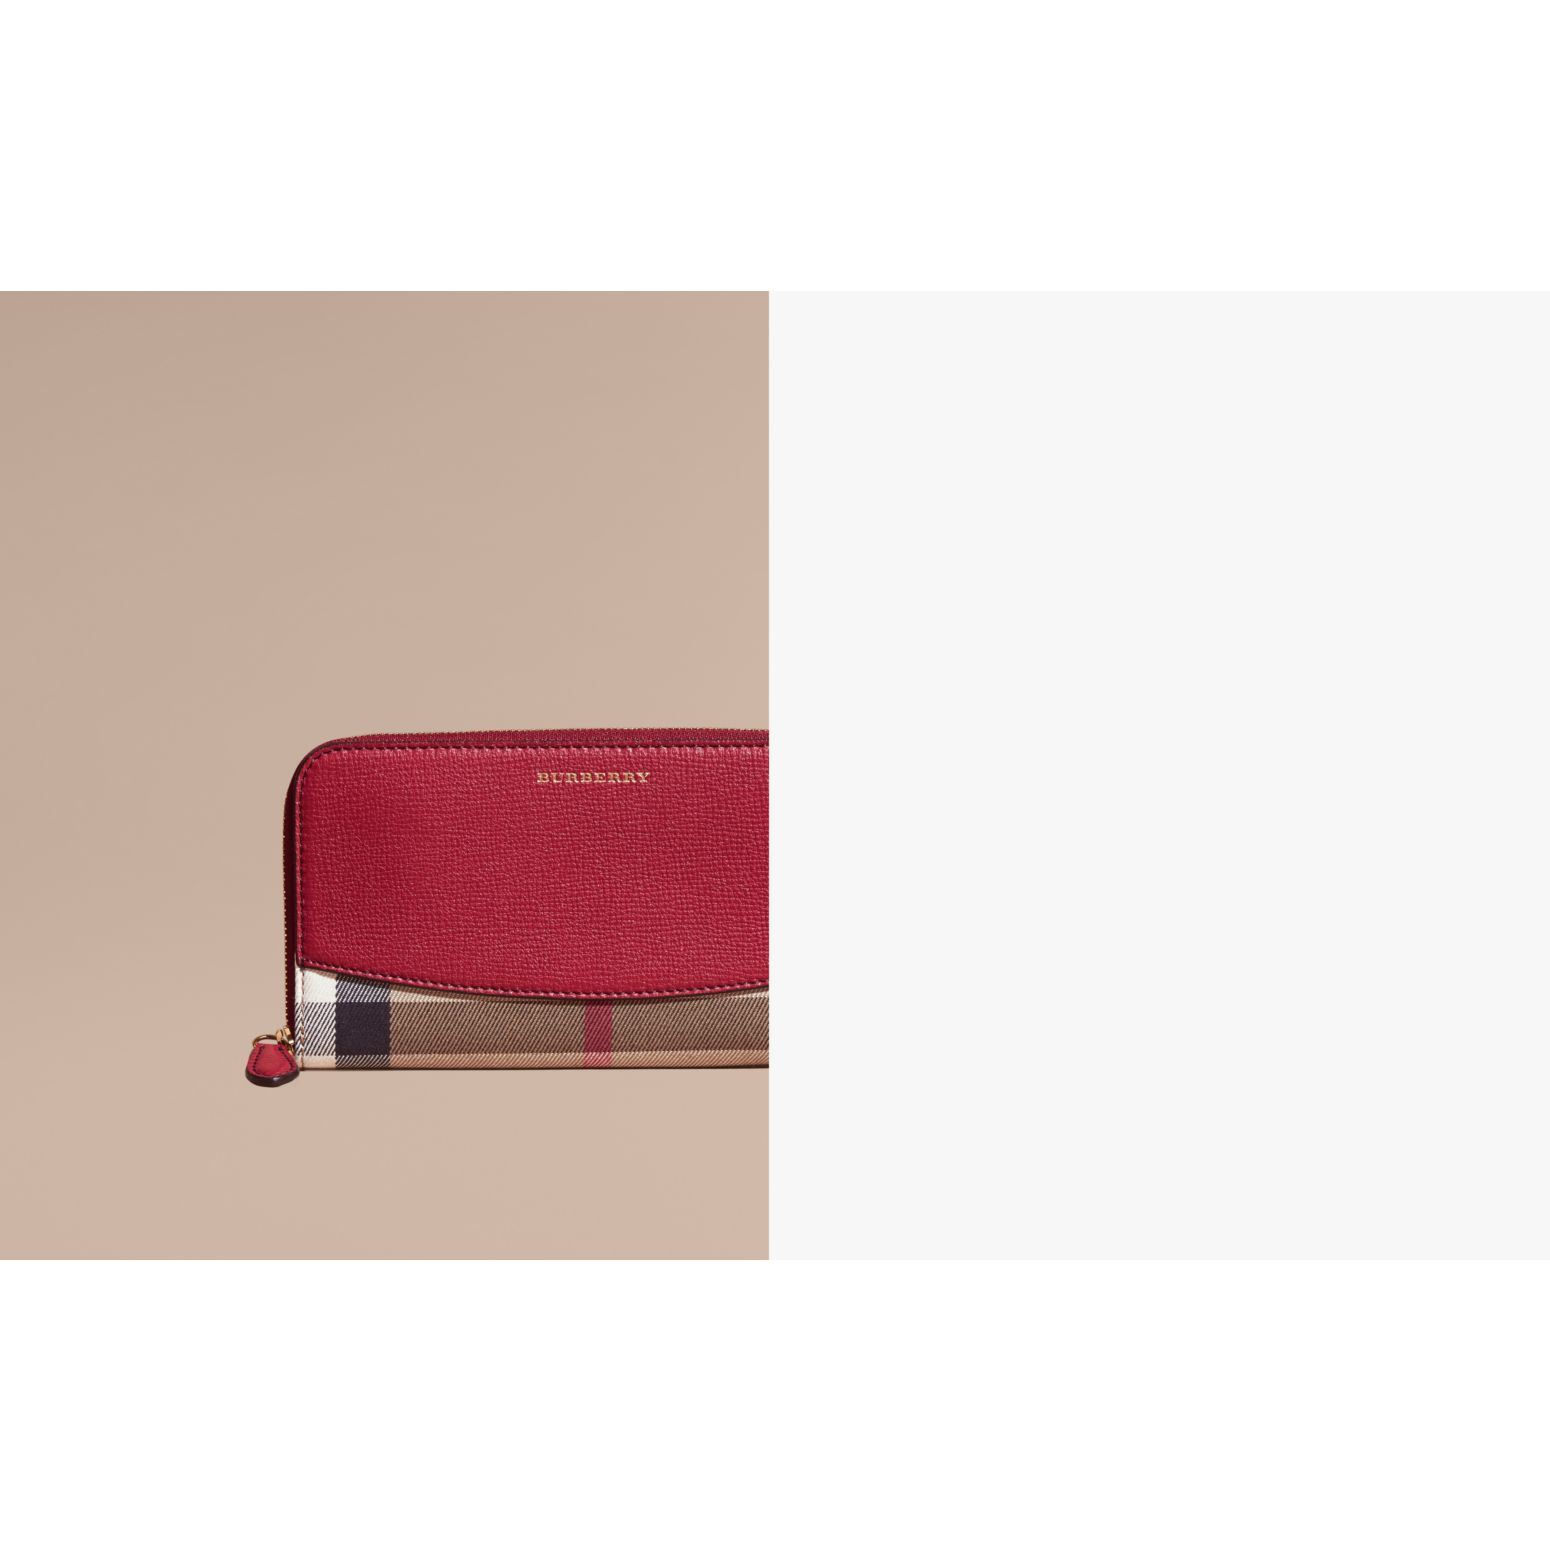 House Check and Leather Ziparound Wallet in Military Red - Women | Burberry Singapore - gallery image 2